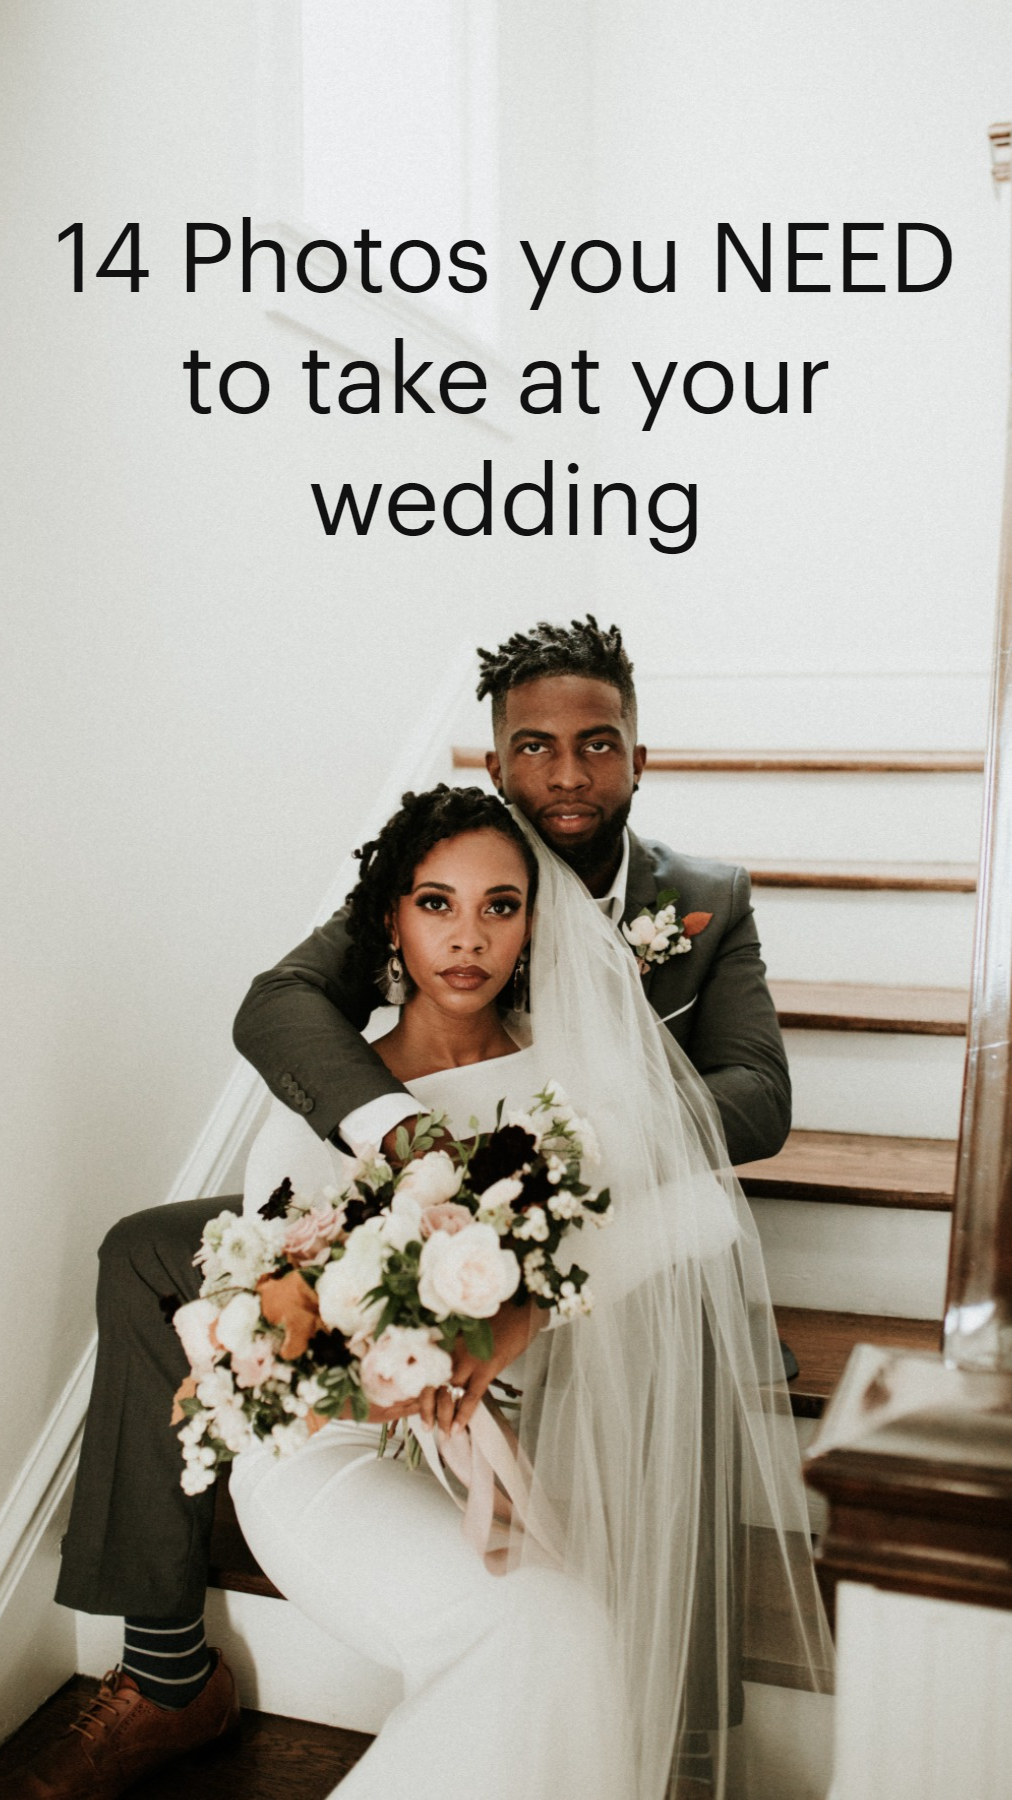 14 Photos you NEED to take at your wedding